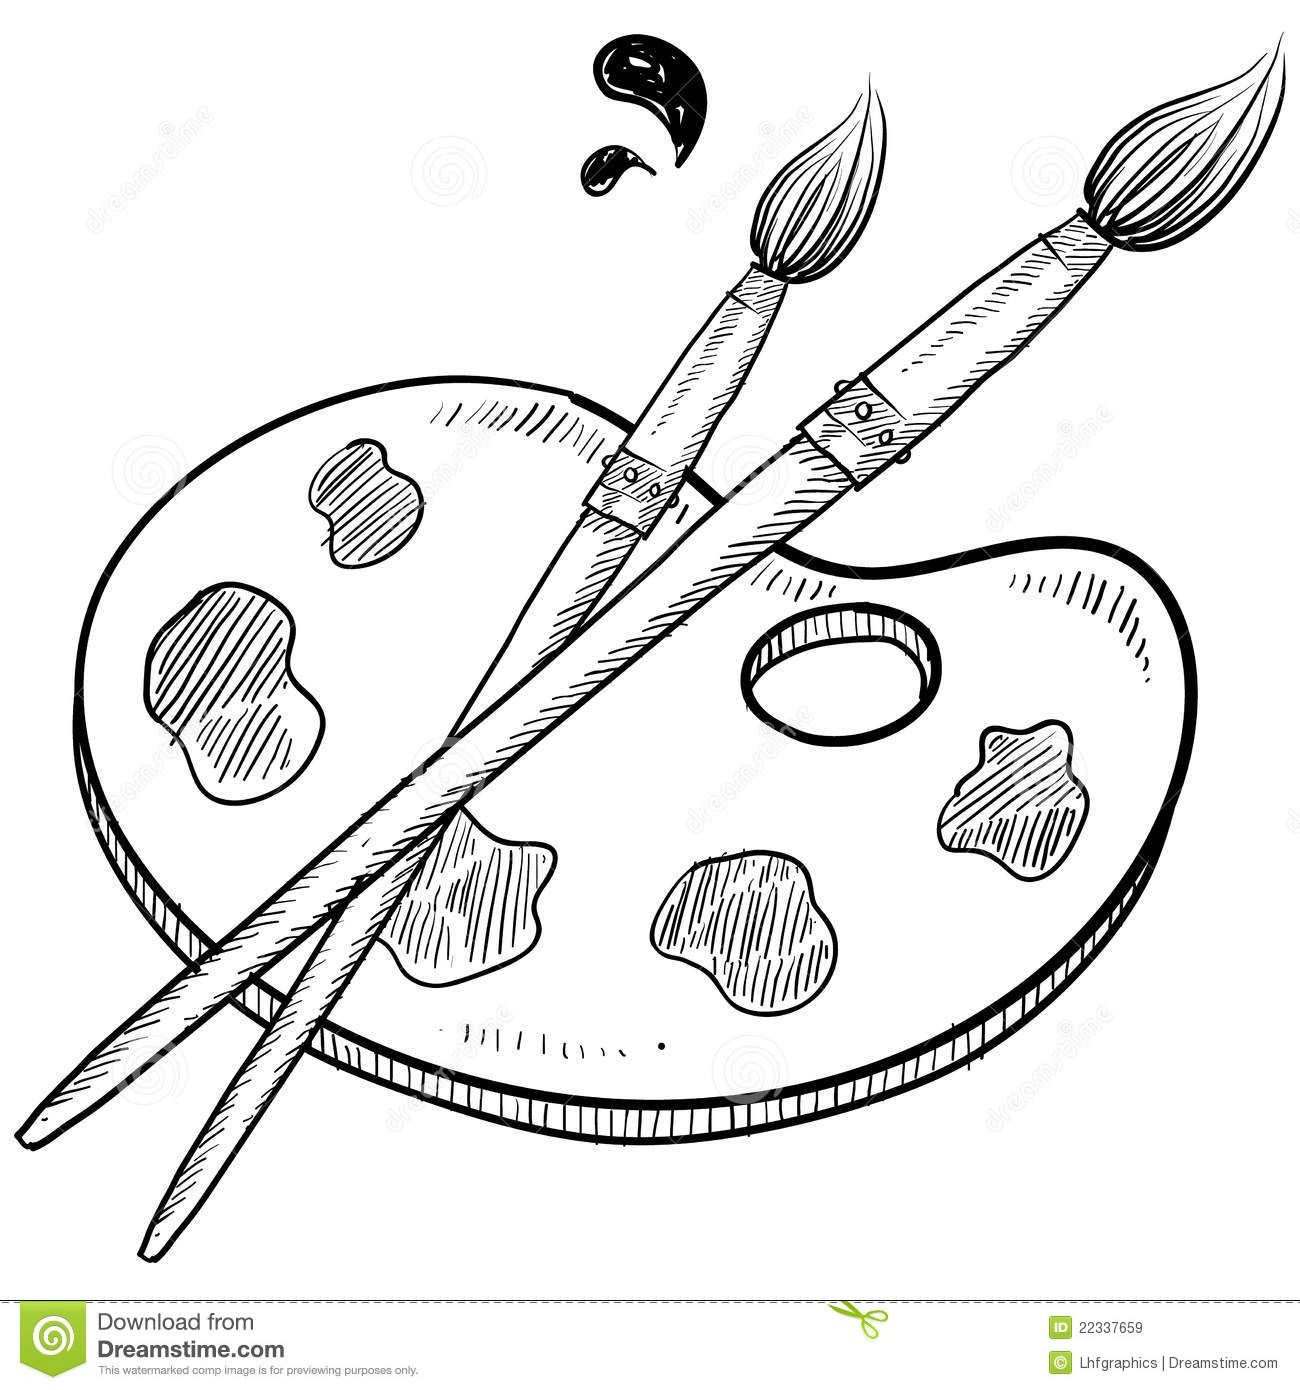 paintbrush clipart black and white Google Search Brush